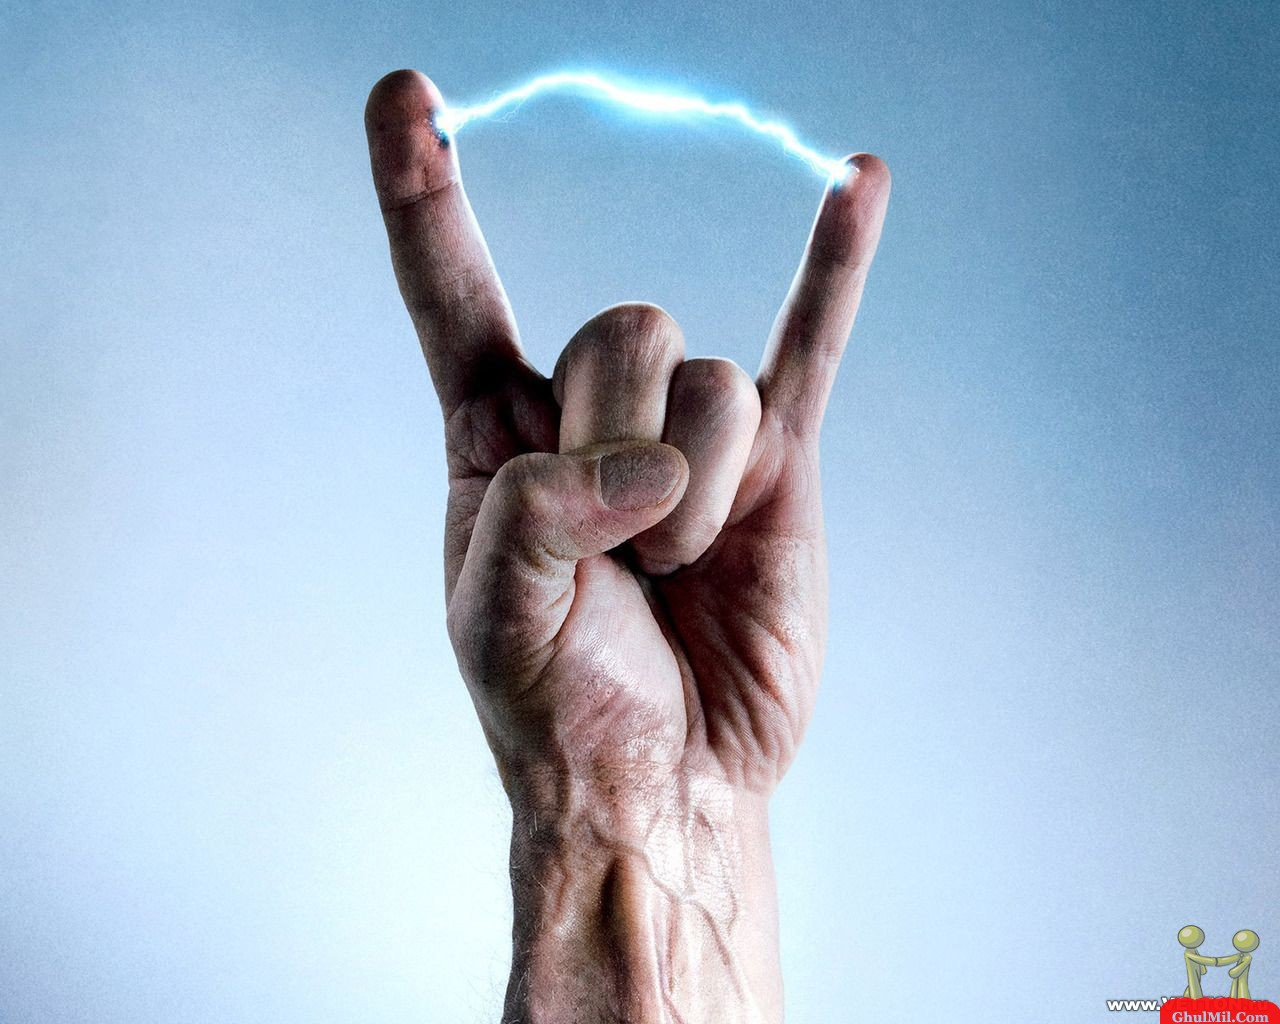 Wonderful Animalls Electric Power Between Two Fingers Funny 240332 Wallpaper wallpaper